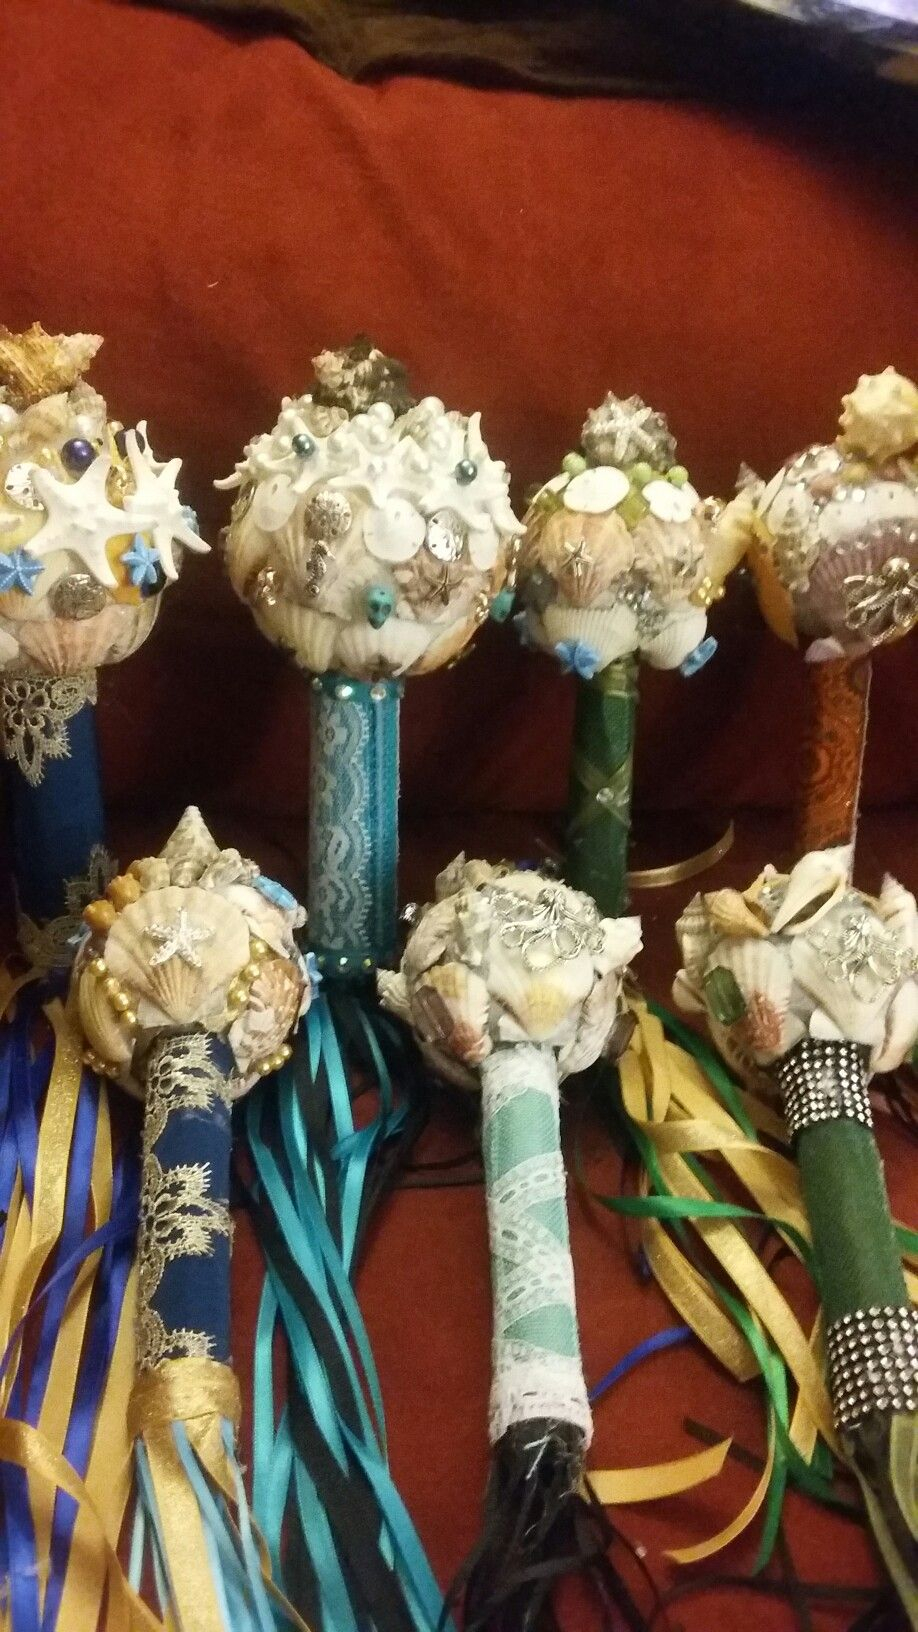 Mermaid bouquets, shells and baubles